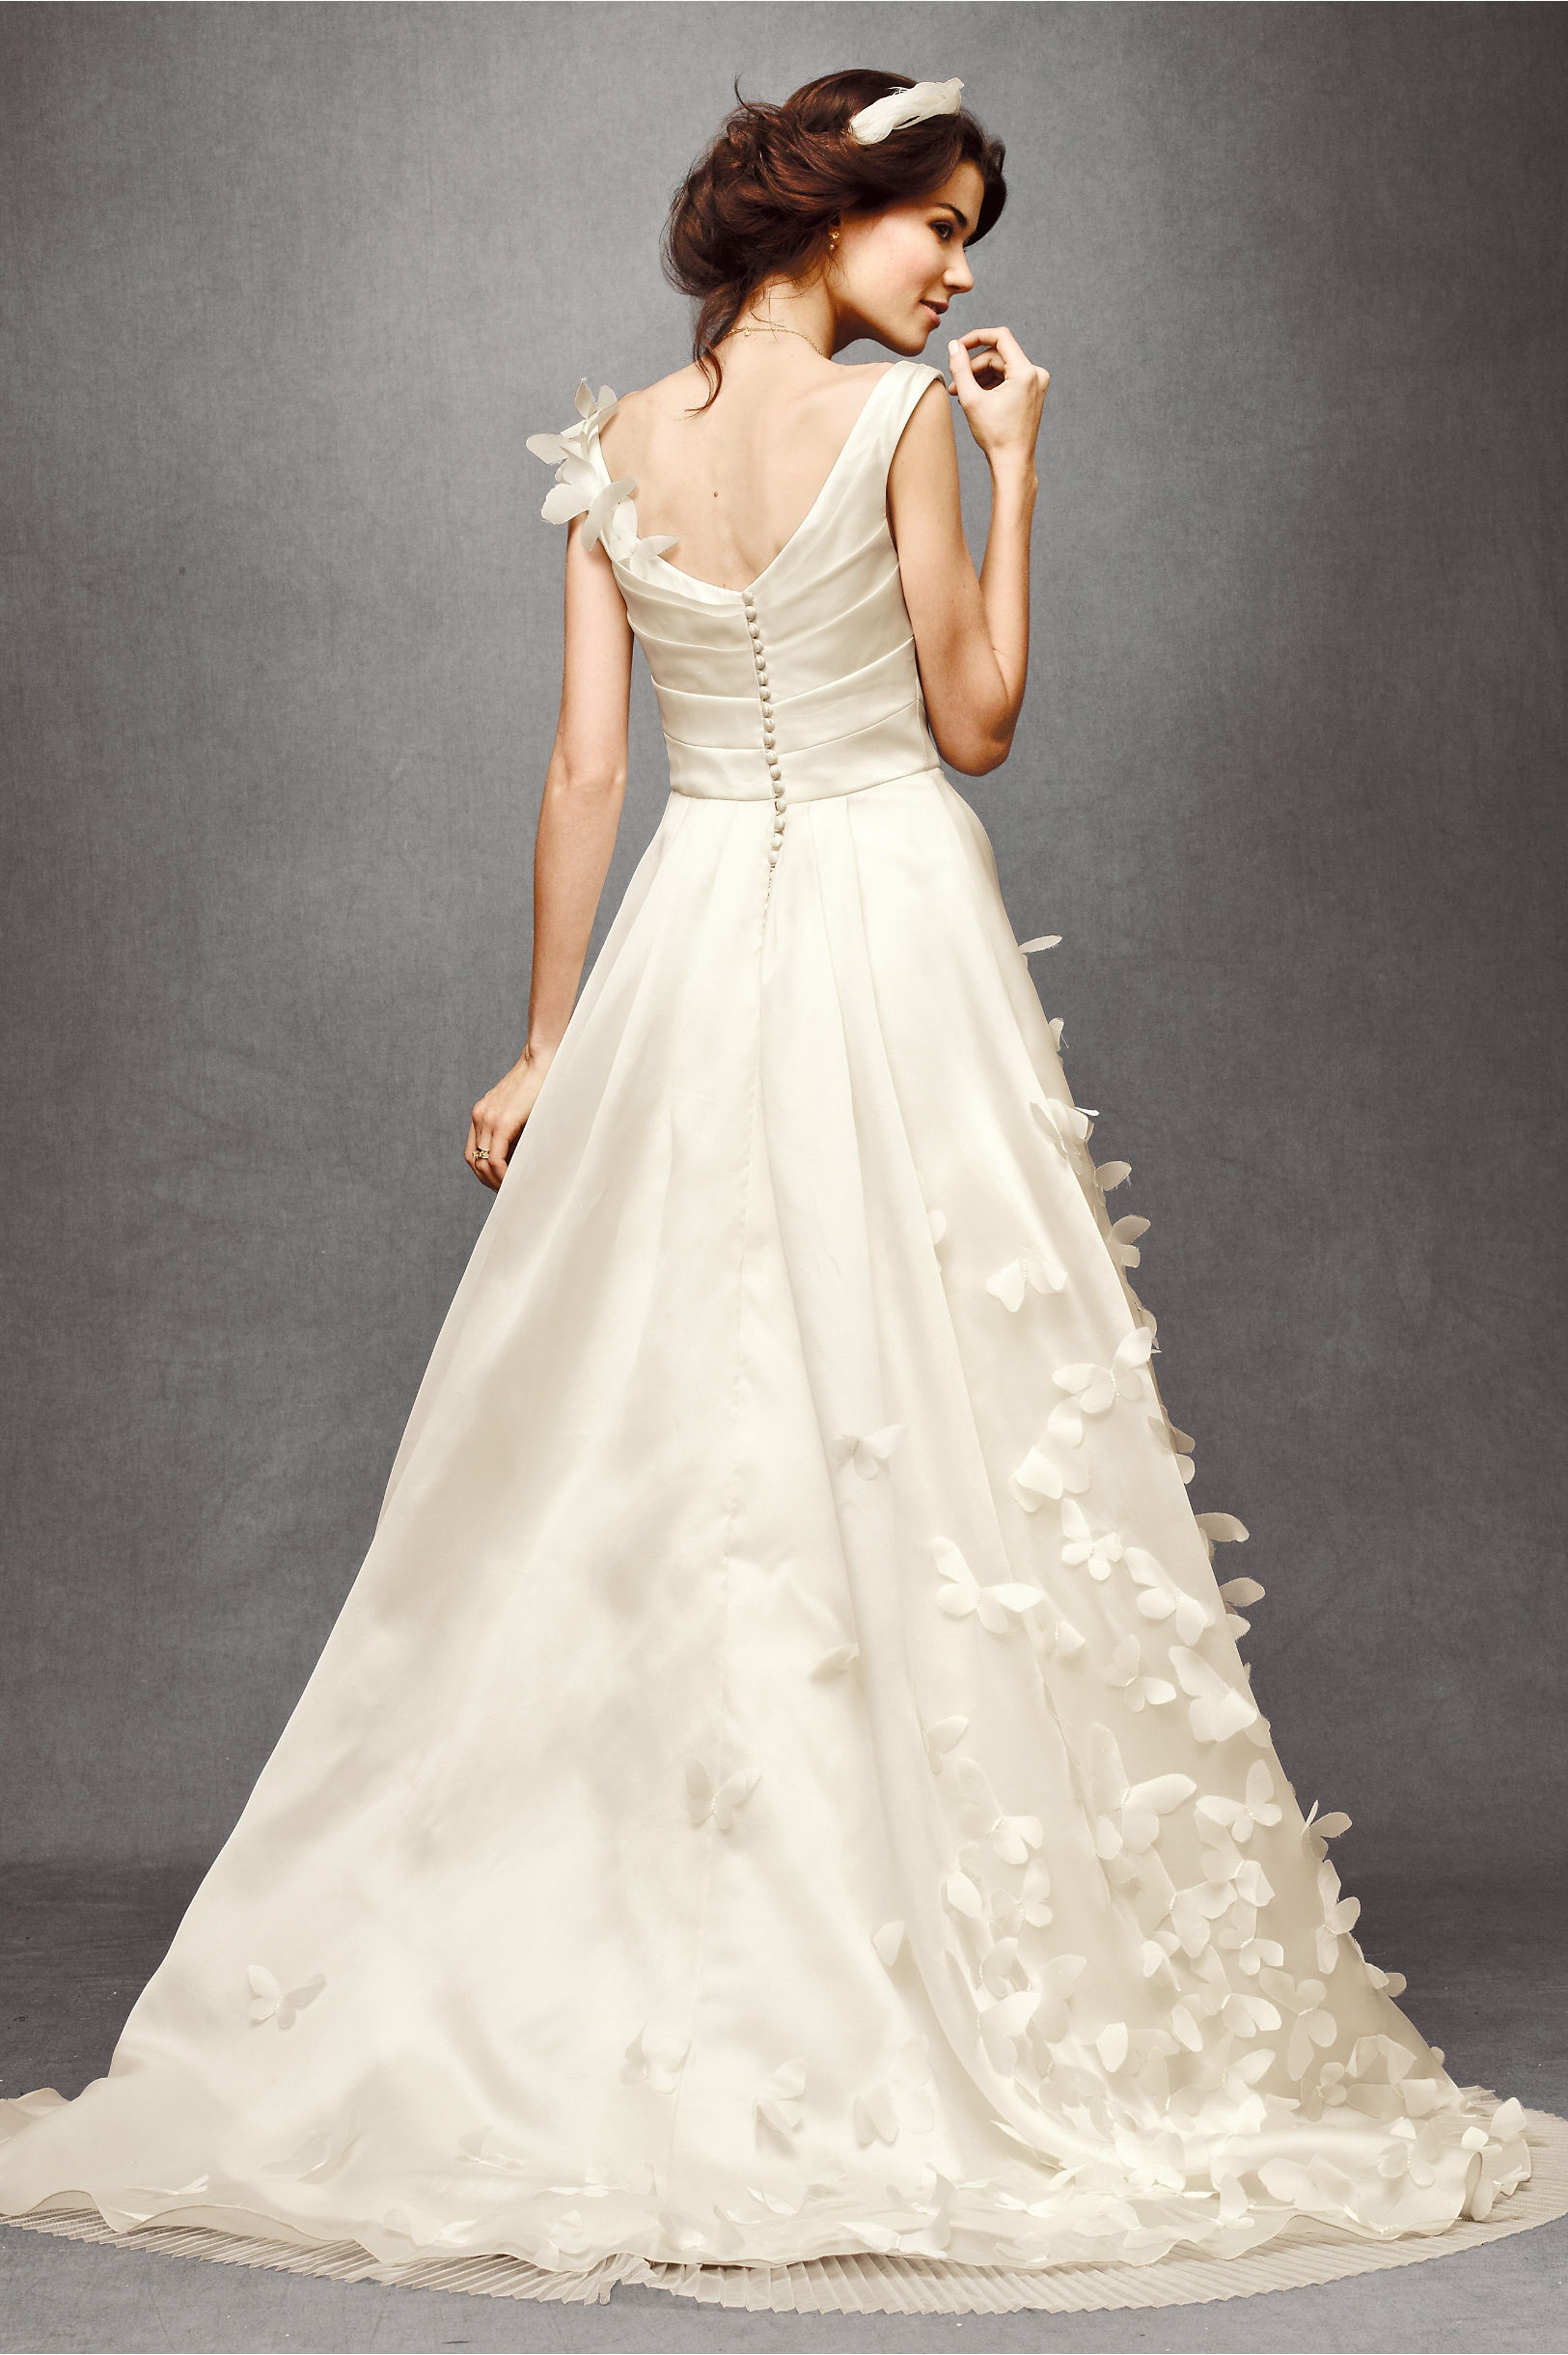 Ethereal monarch gown onewedcom for Ethereal wedding dress